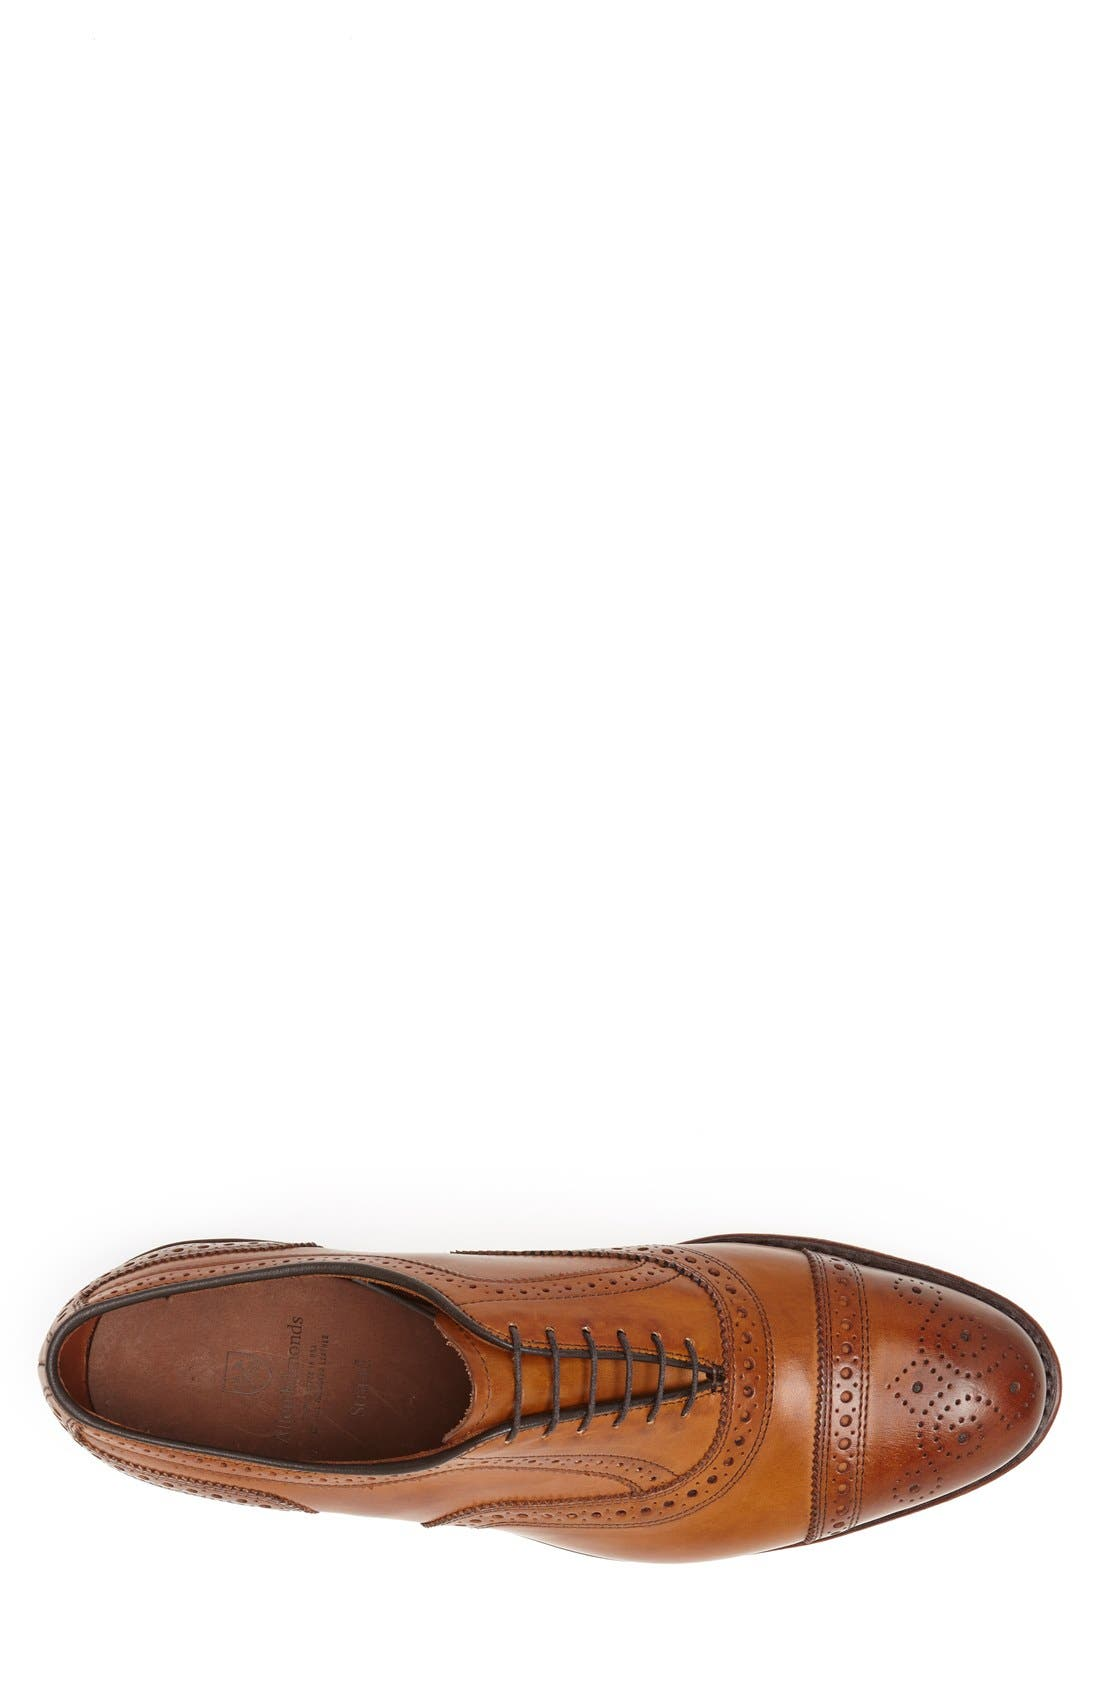 ALLEN EDMONDS, 'Strand' Cap Toe Oxford, Alternate thumbnail 4, color, WALNUT LEATHER